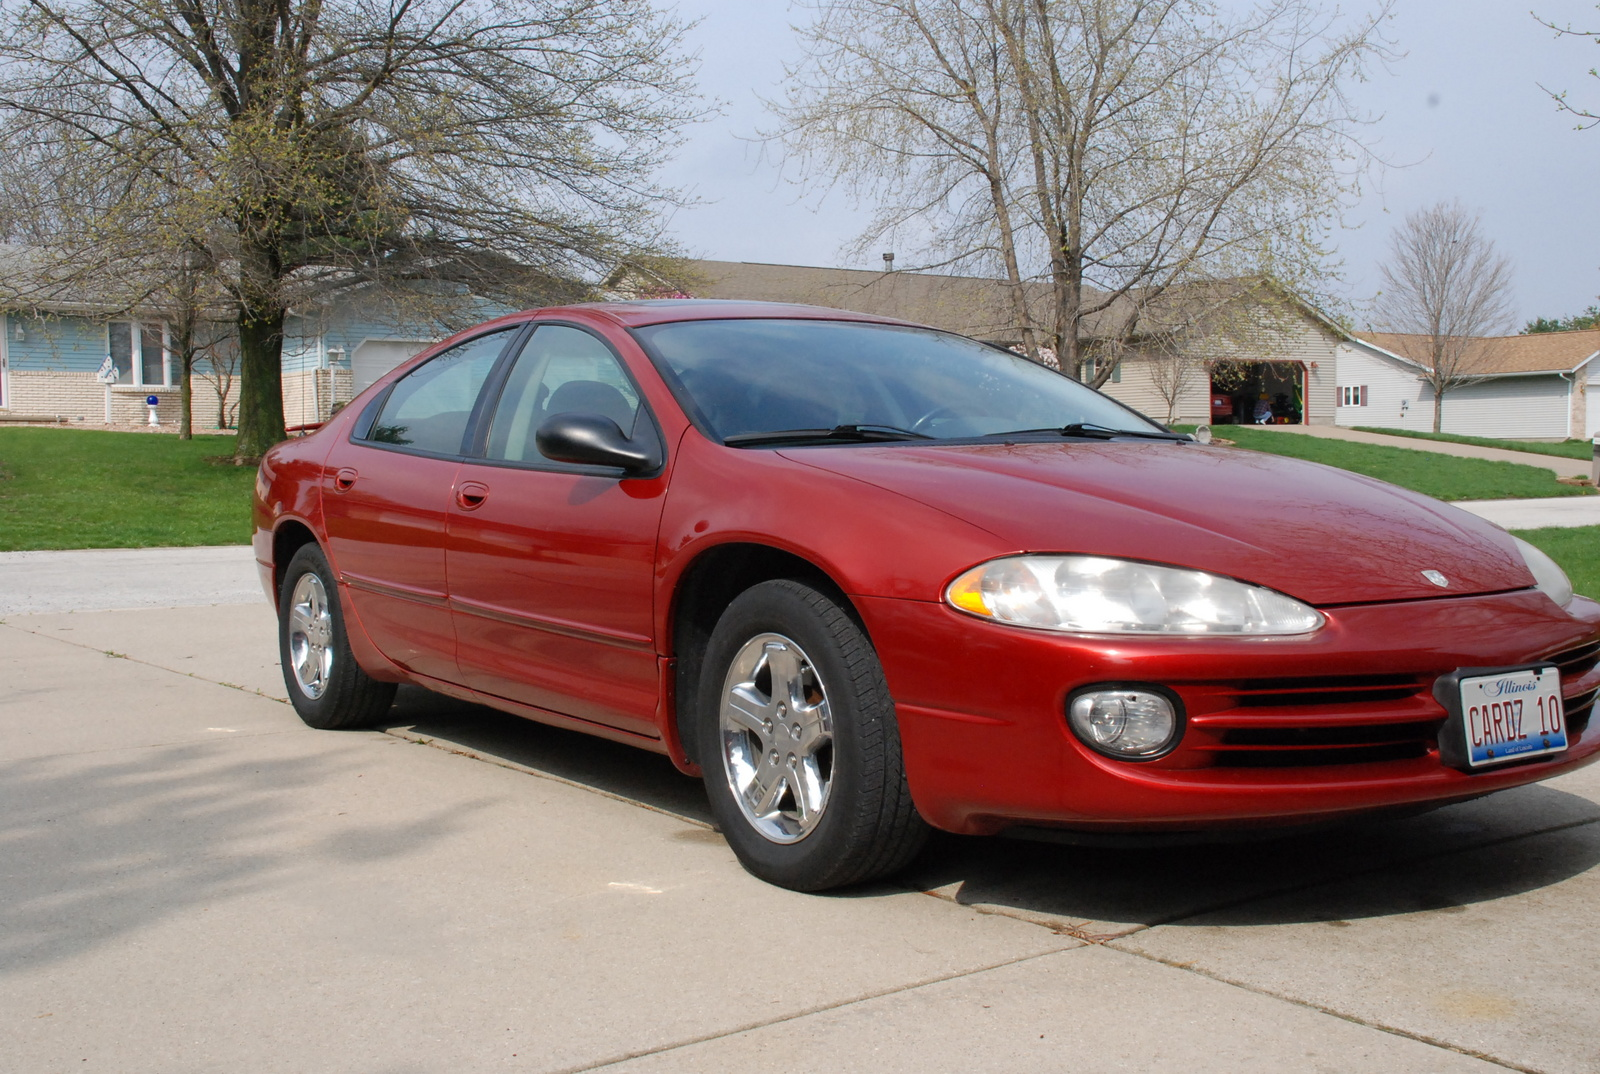 04 dodge stratus 2 7 engine diagram  04  free engine image